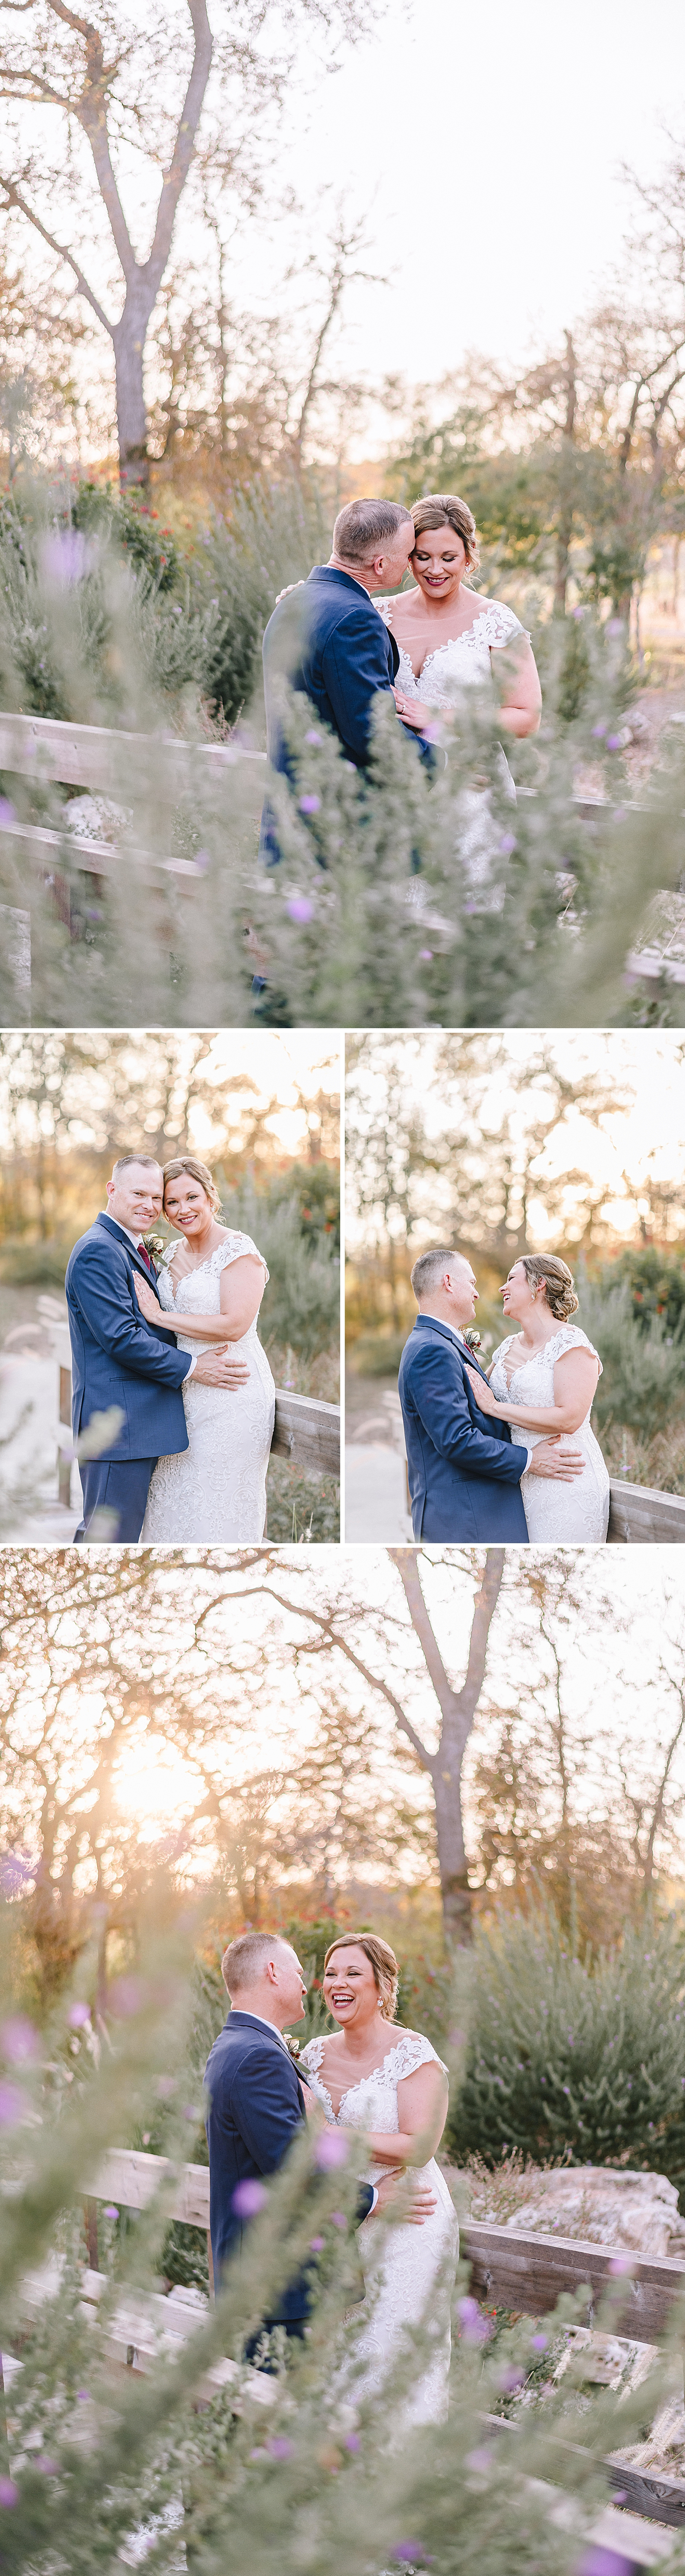 Geronimo-Oaks-Wedding-Venue-Seguin-Texas-Elegant-Navy-Burgundy-Wedding-Carly-Barton-Photography_0047.jpg